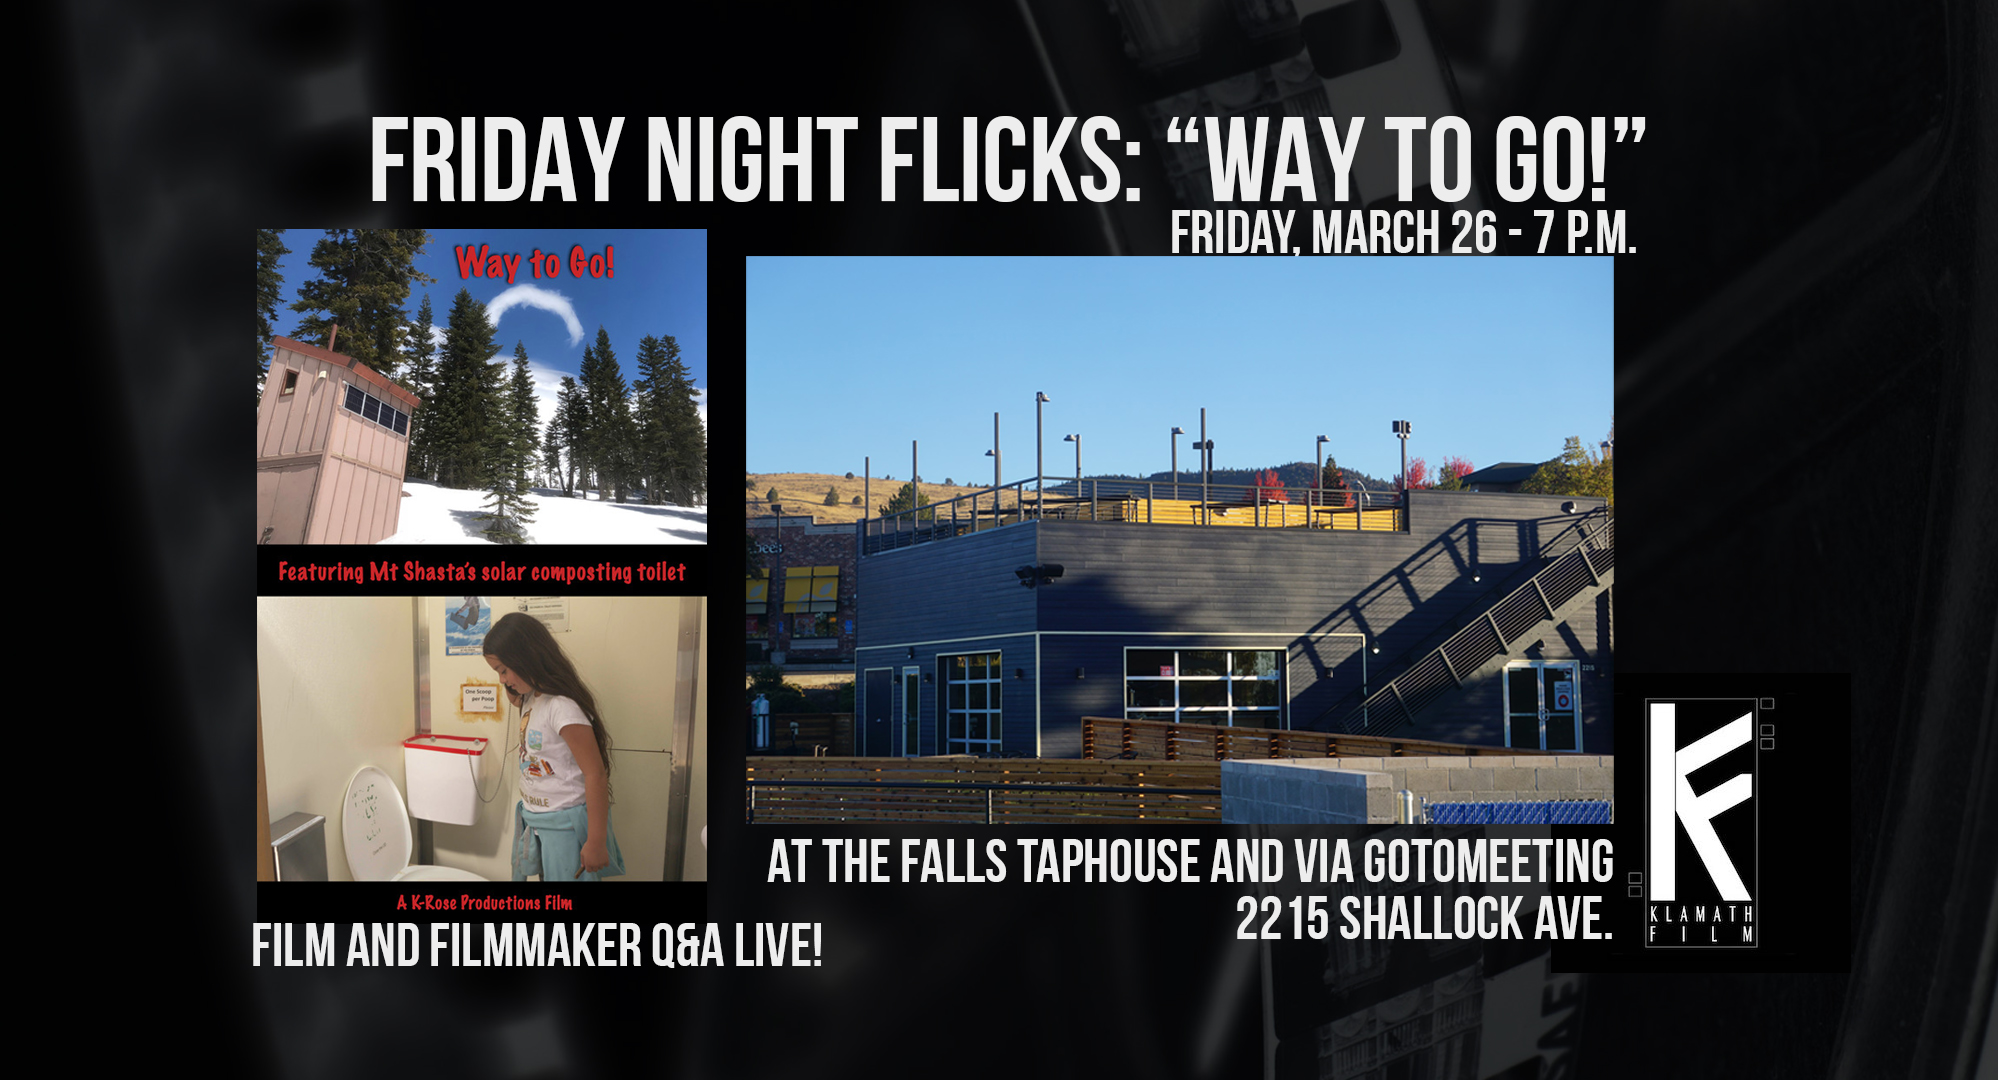 'Way to Go!' film screening and Q&A at Falls Taphouse March 26